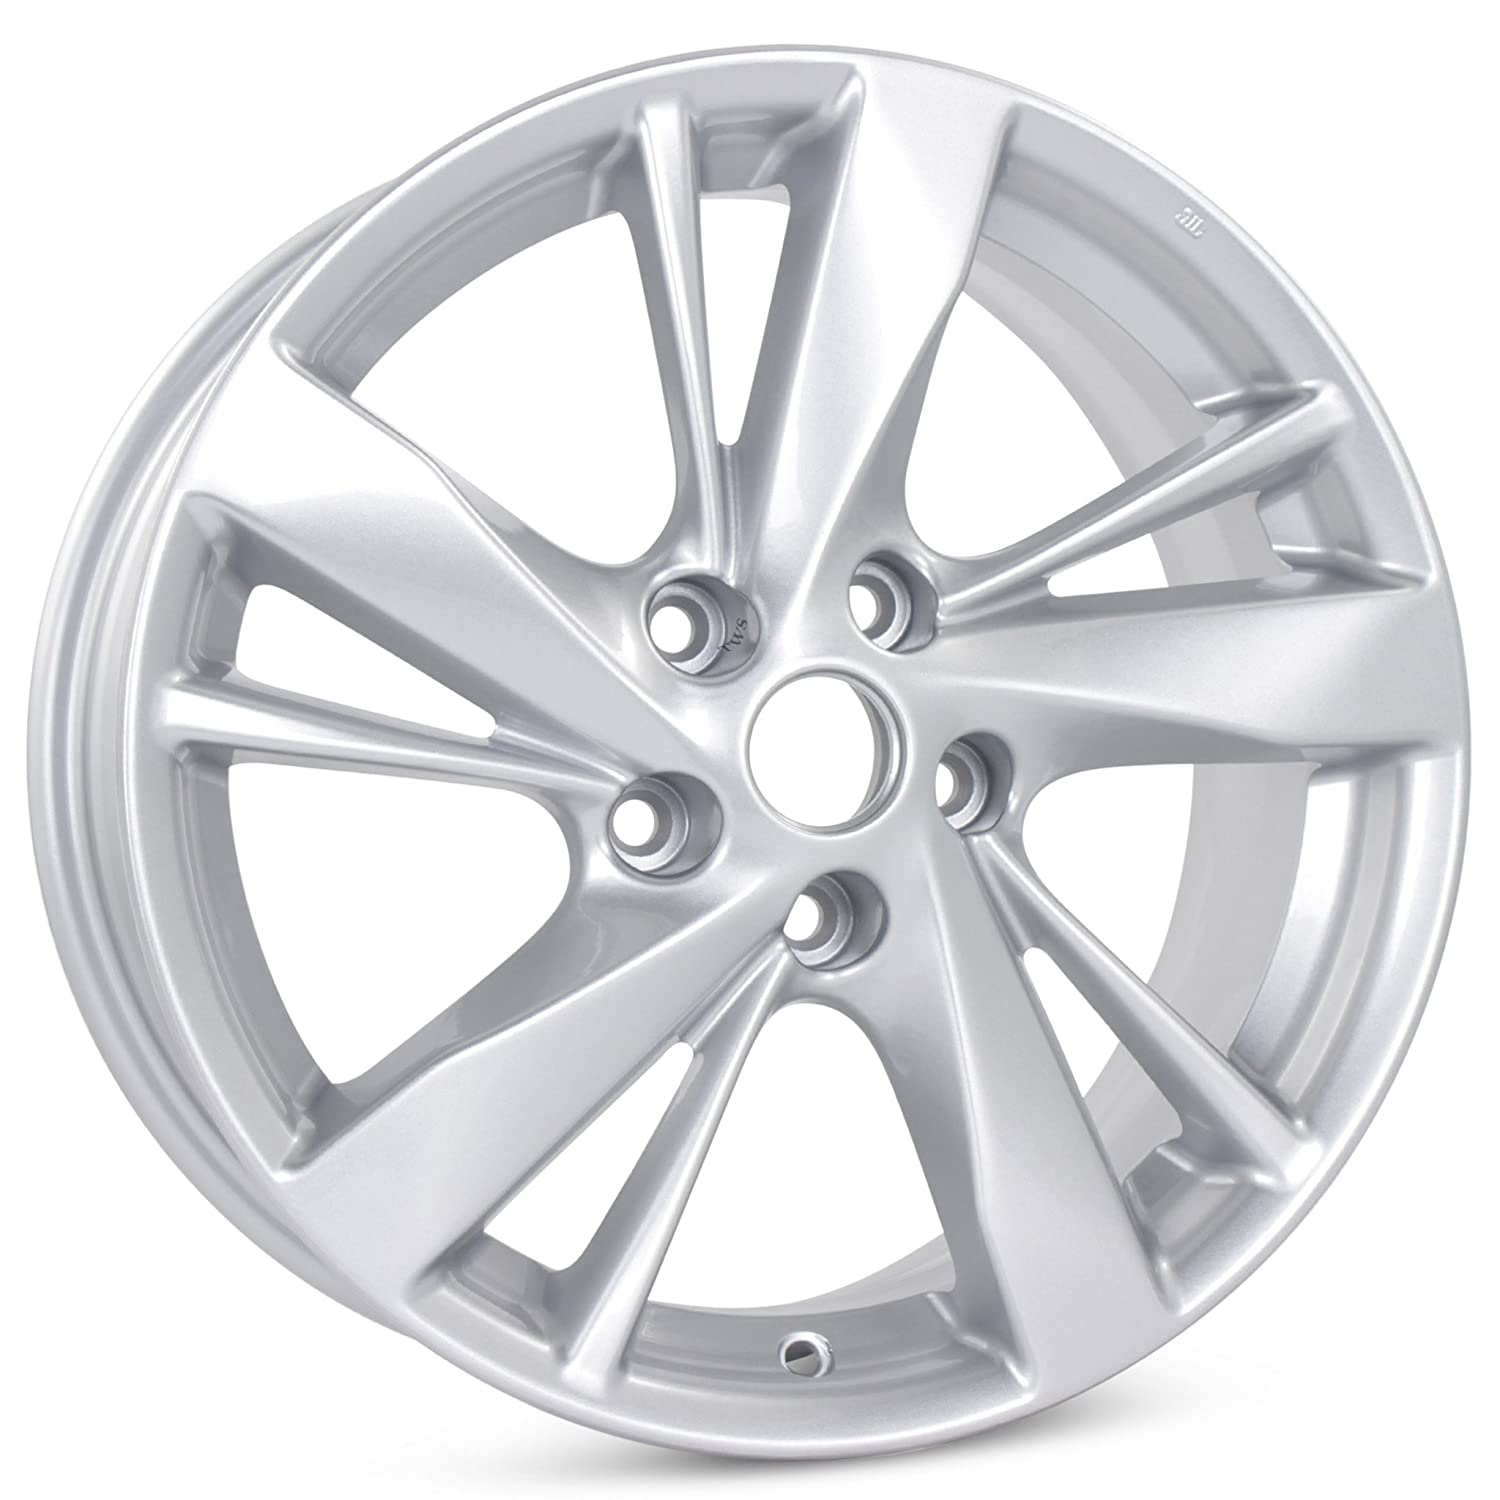 "Amazon New 17"" Alloy Replacement Wheel for Nissan Altima 2013"